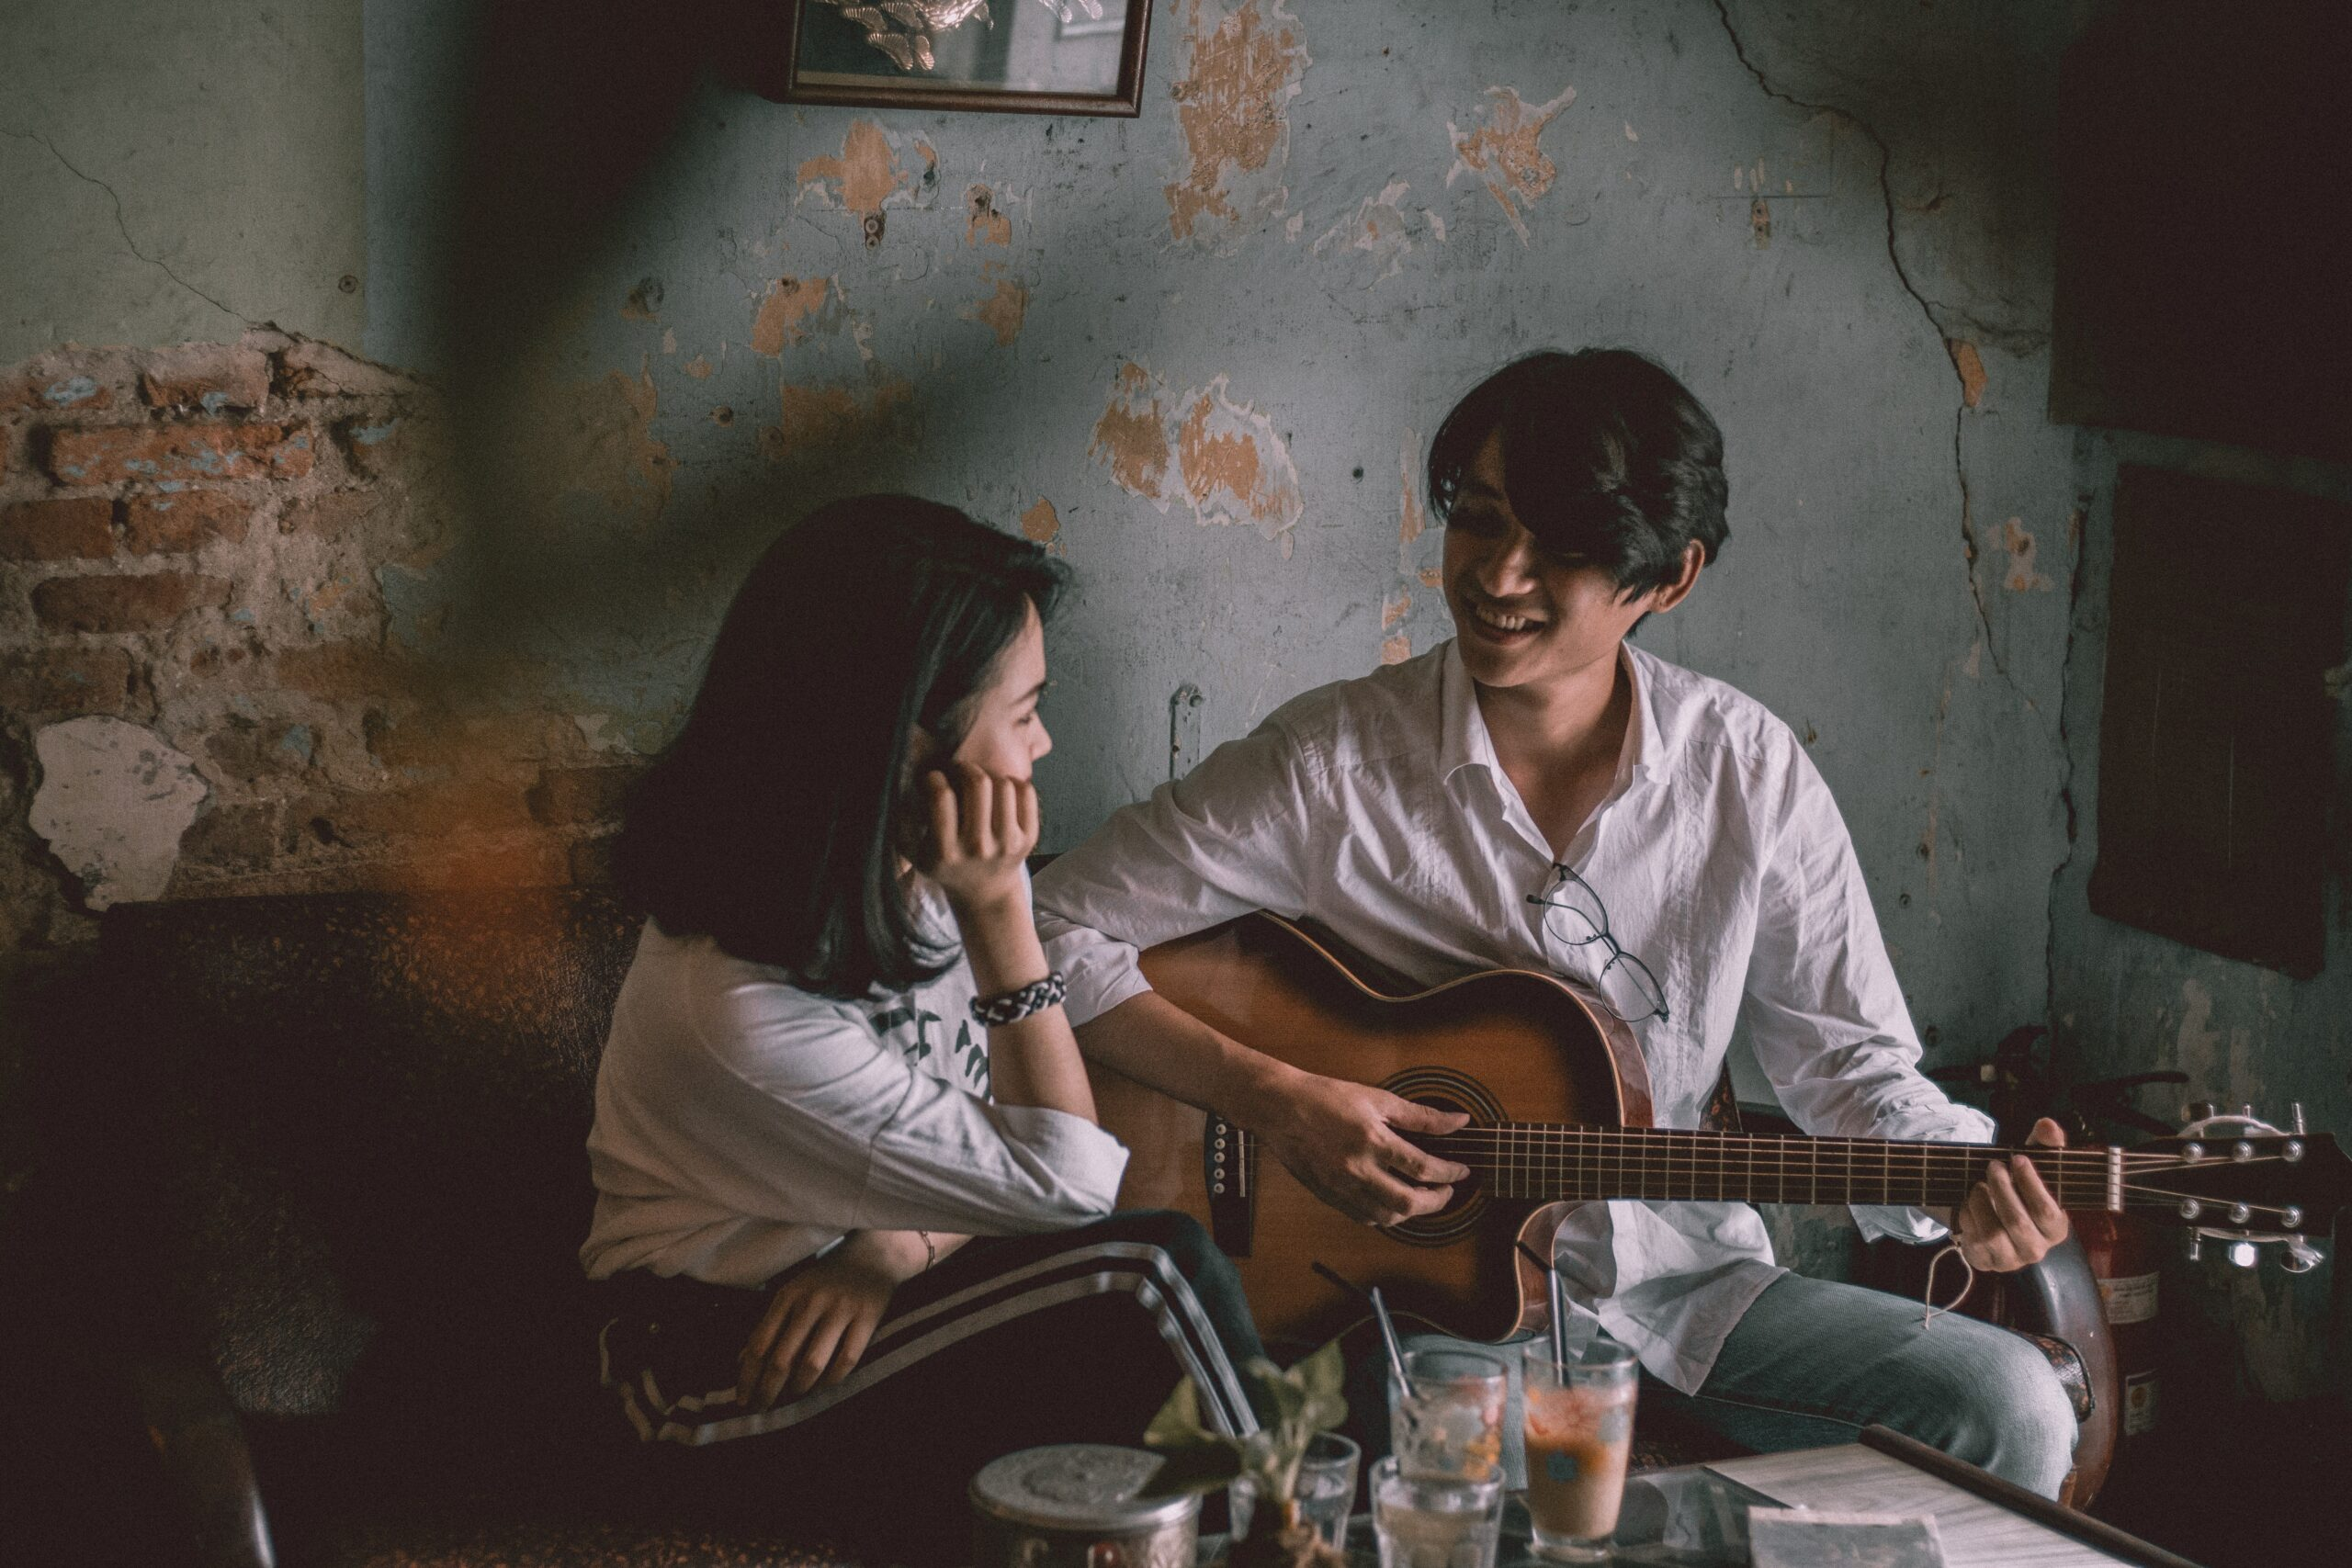 Man Playing Guitar with Girl   Best Way To Learn Guitar At Home Today (9+ Easy Tips)